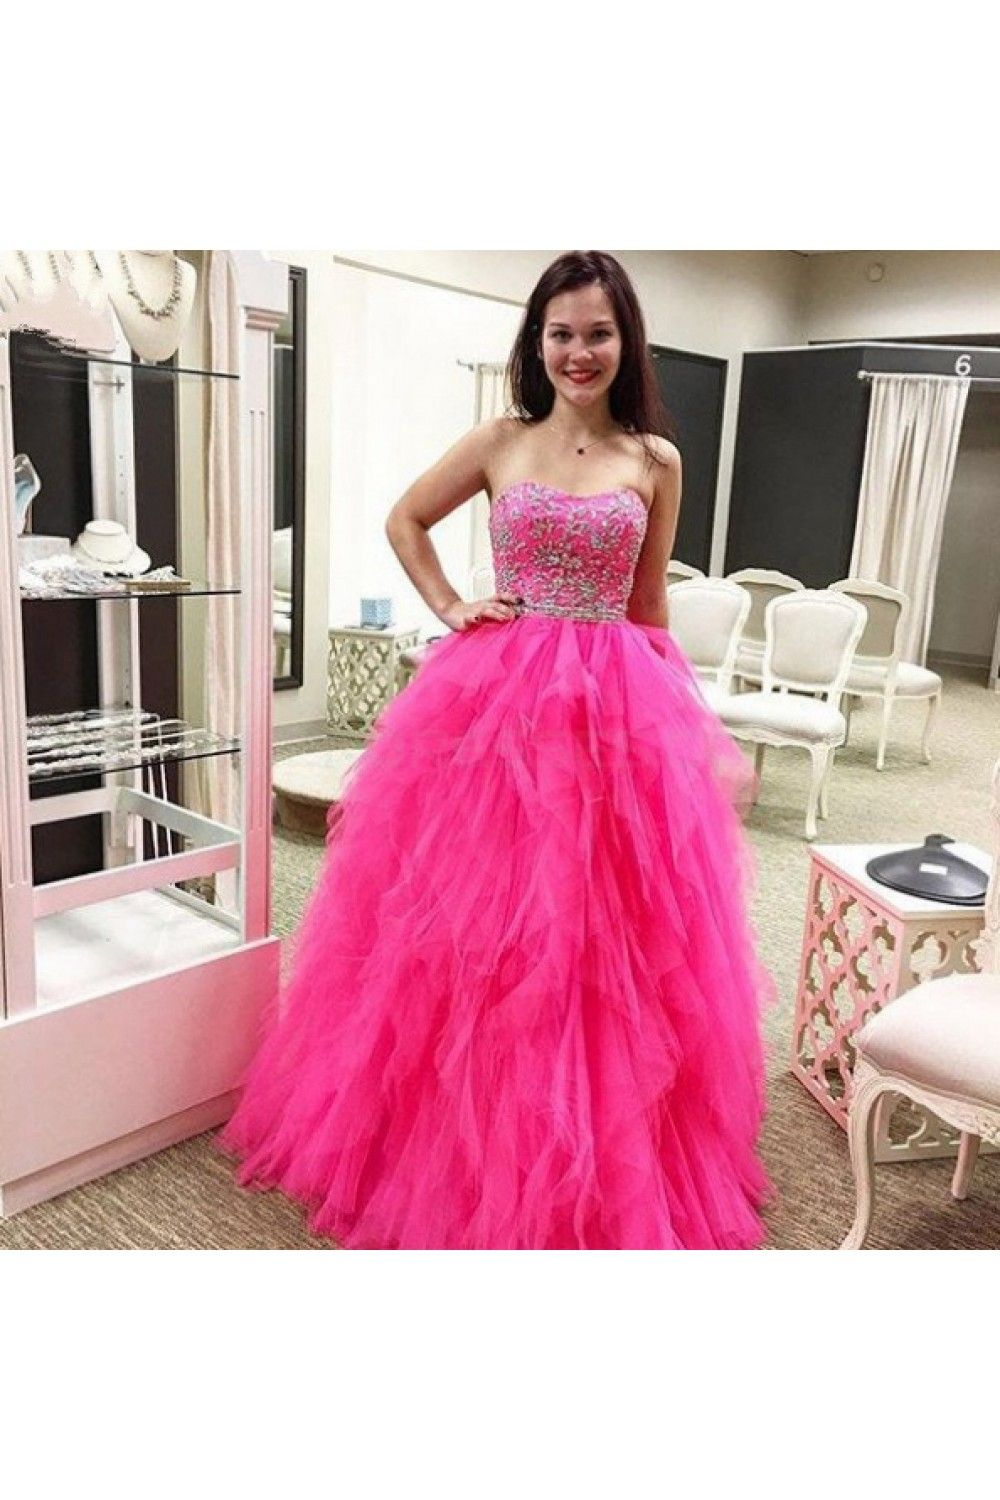 Beaded tulle ball gown long prom formal evening party dresses